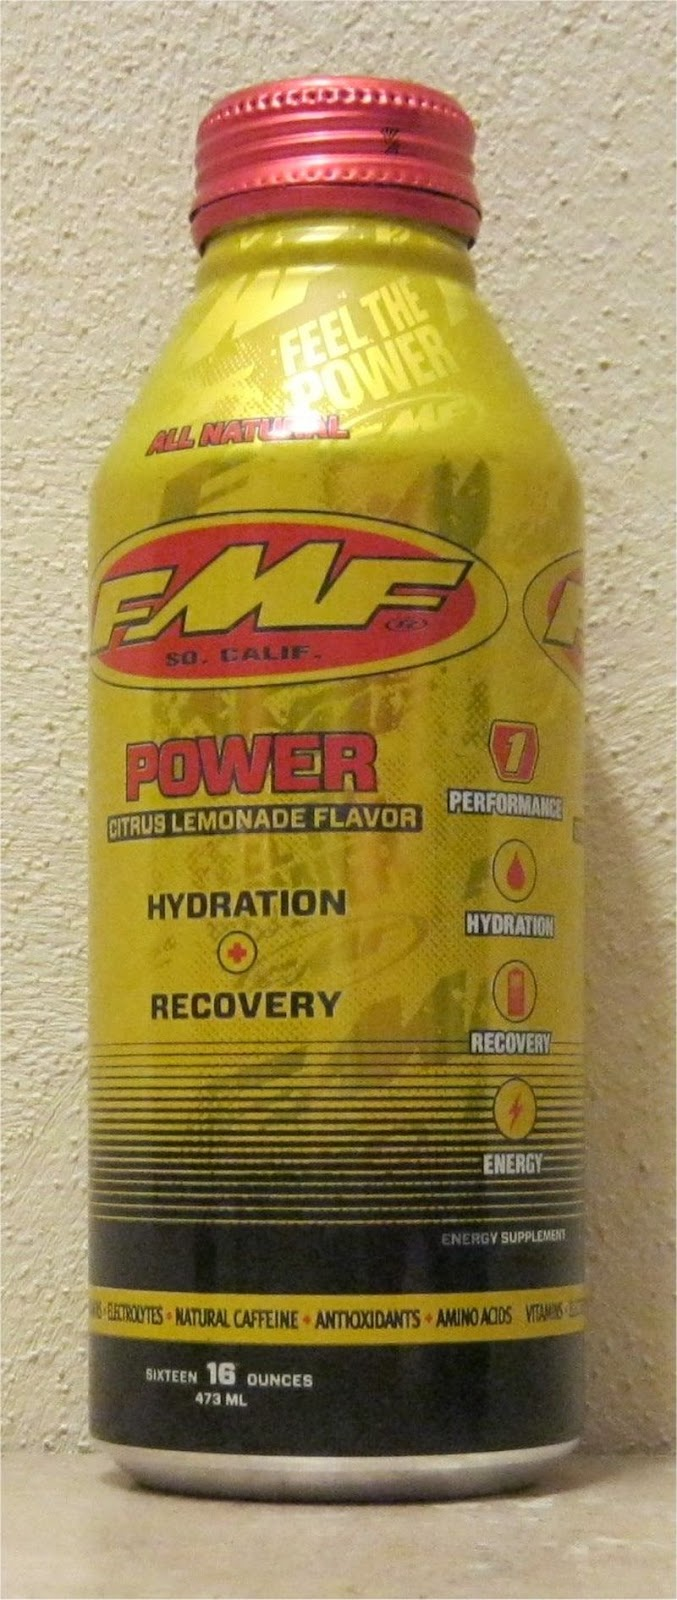 Fmf Energy Drink Where To Buy